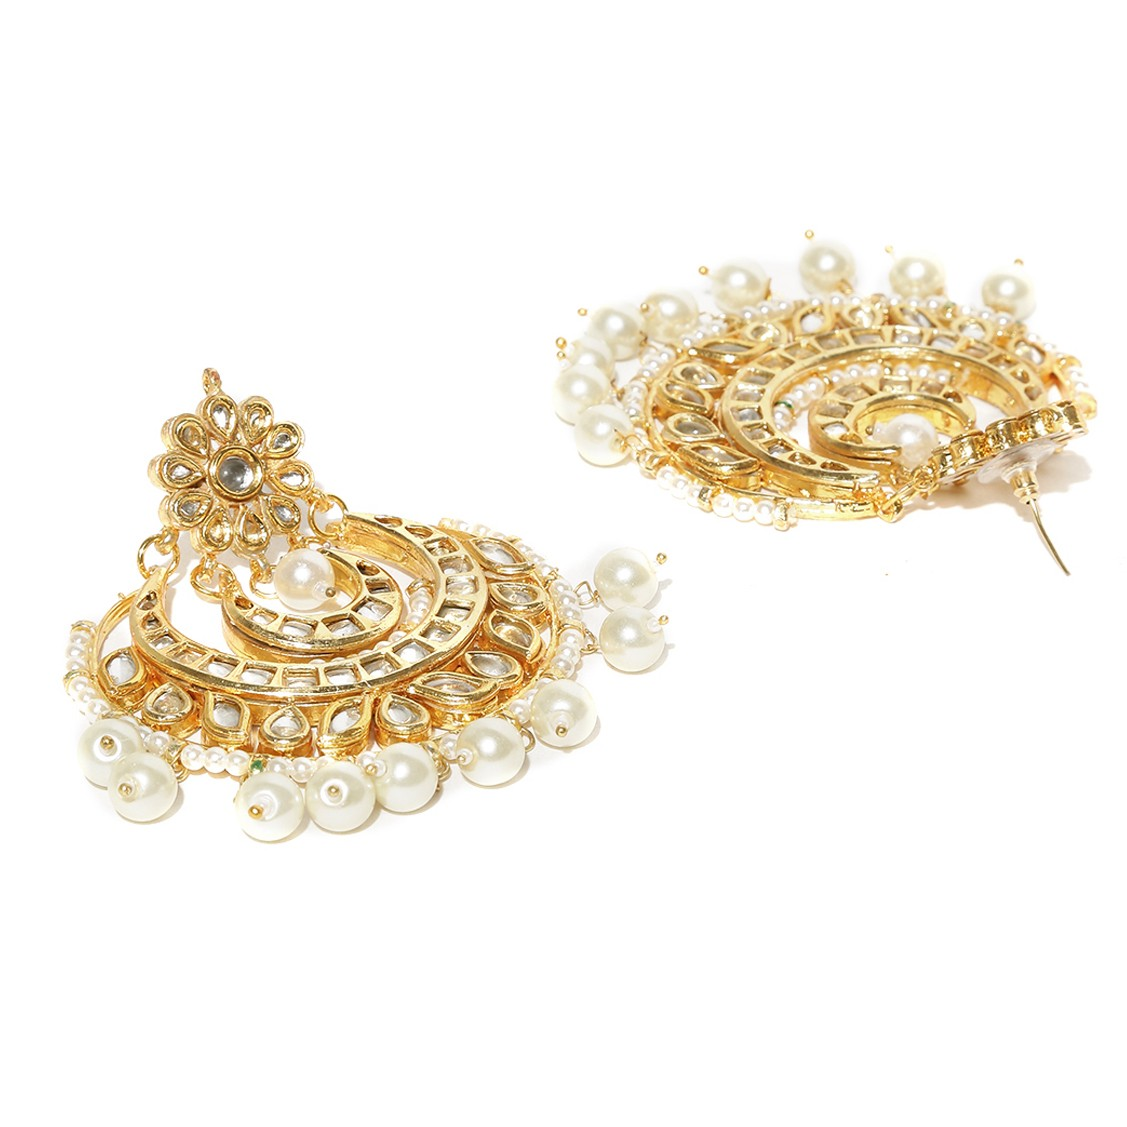 Kundan Stone Earrings Moon Design Golden Color For Woman & Girls